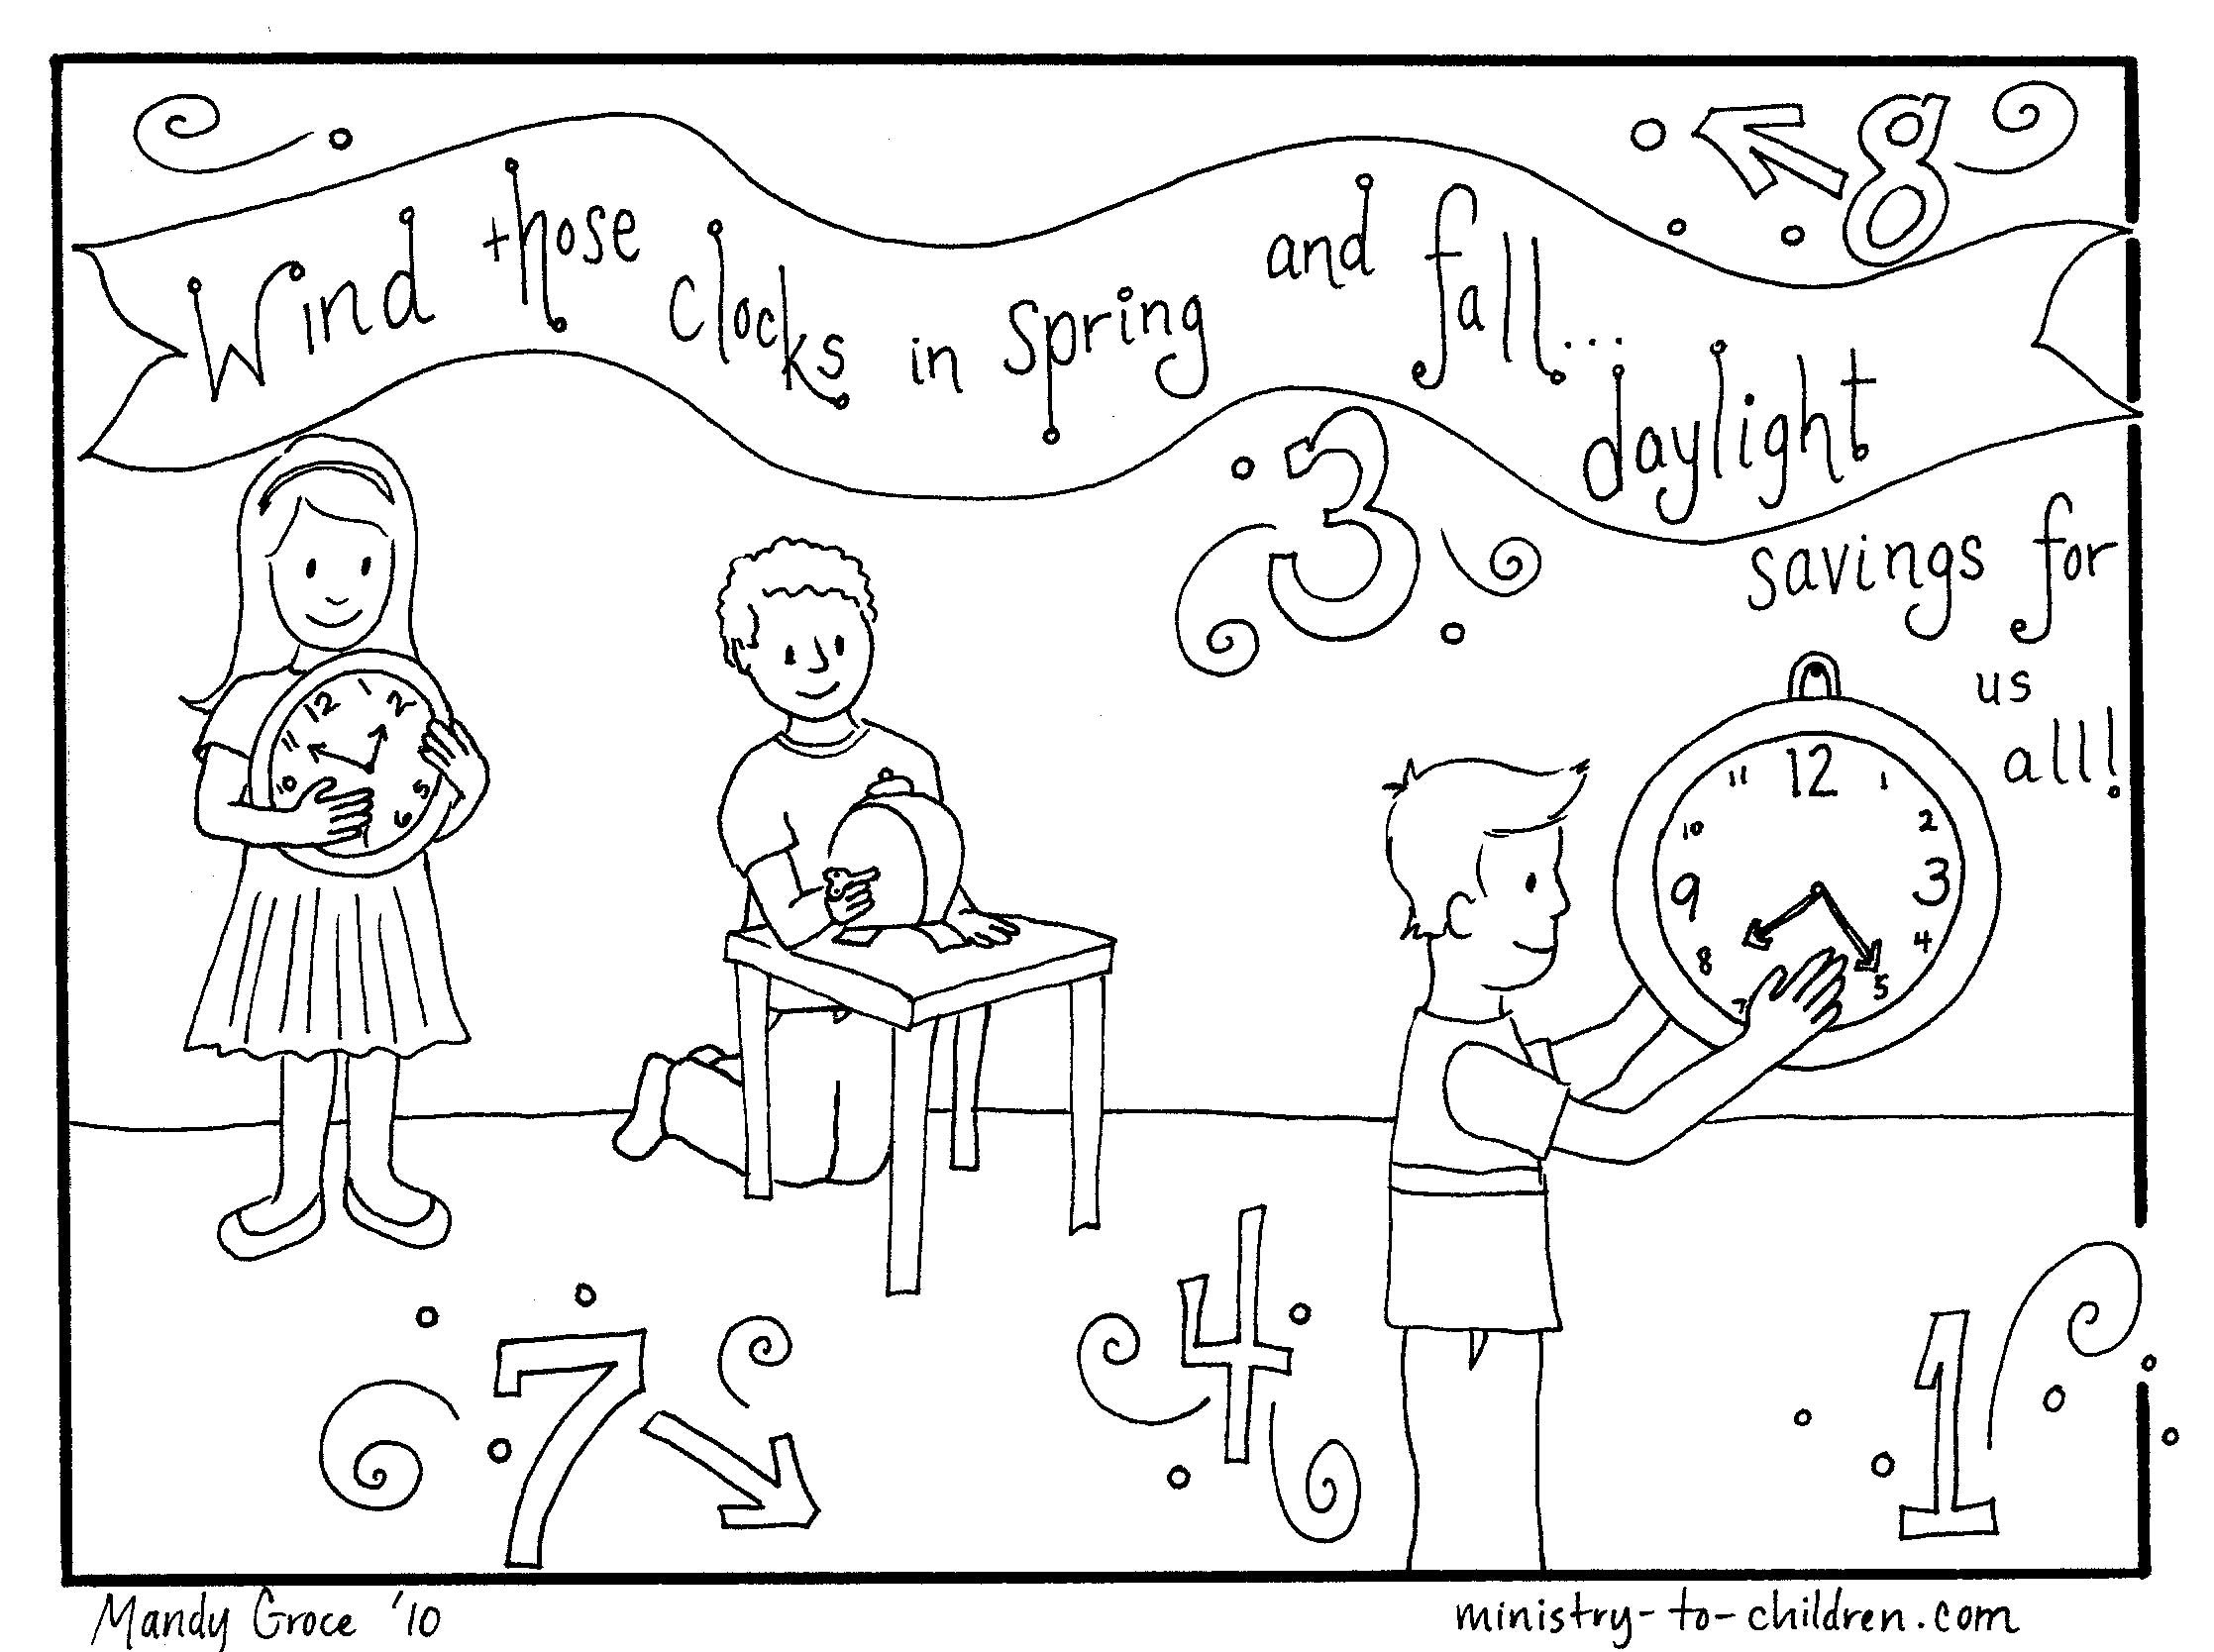 2235x1668 Coloring Page About Daylight Savings Time Httpministry